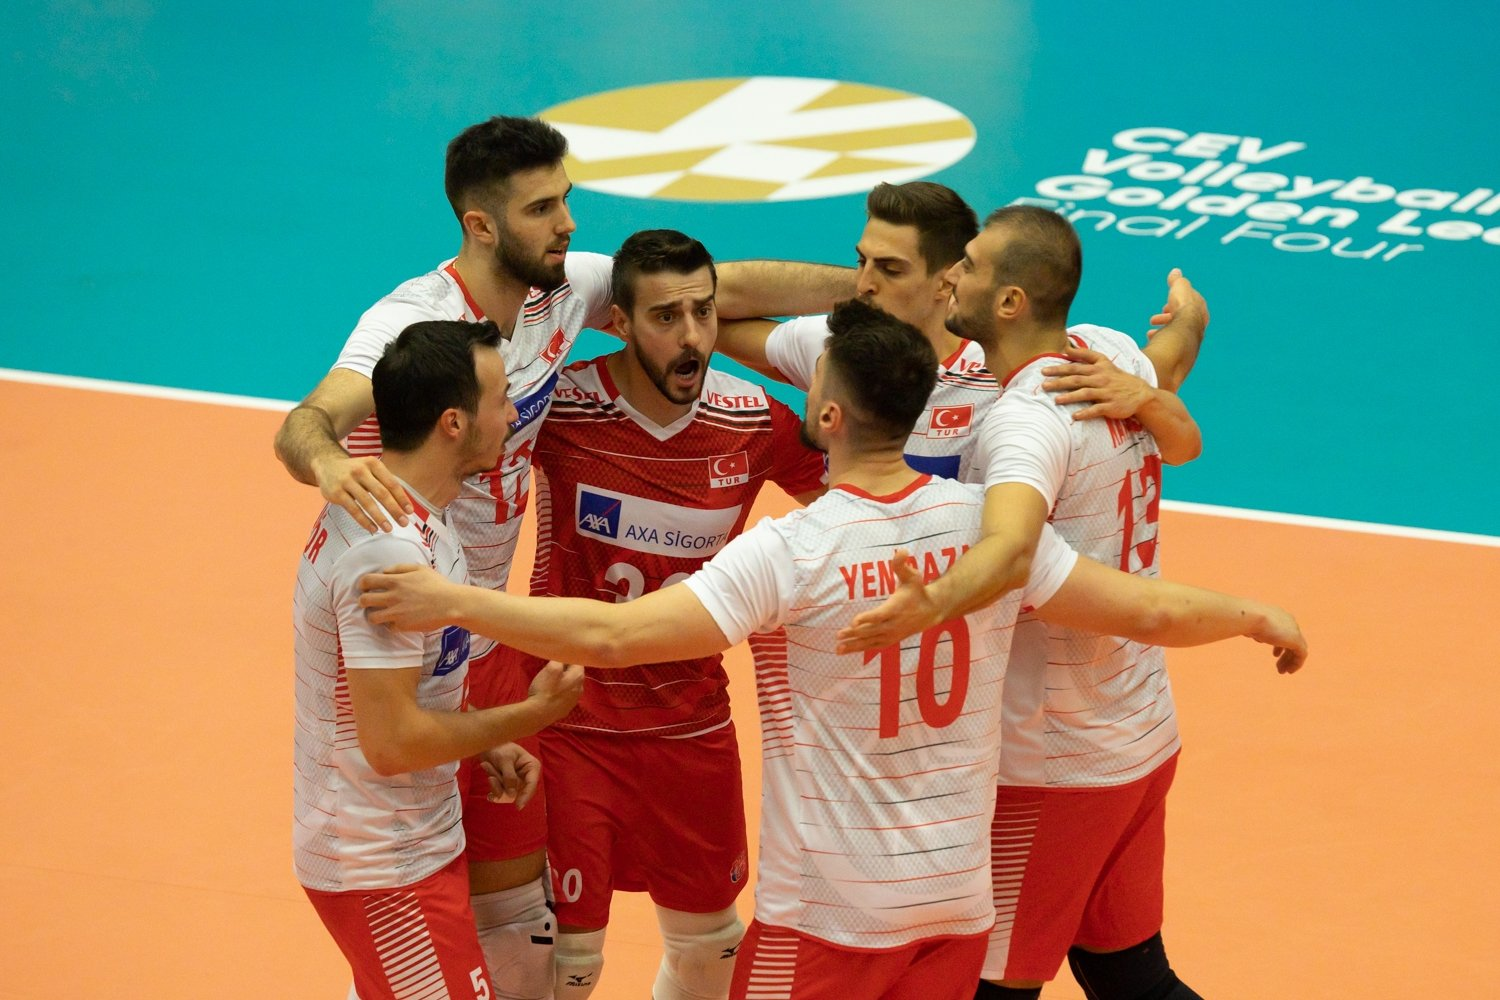 The Turkish national team celebrates after becoming champions at CEV Men's Volleyball European Golden League 2021 in Belgium, June 20, 2021 (AA Photo)